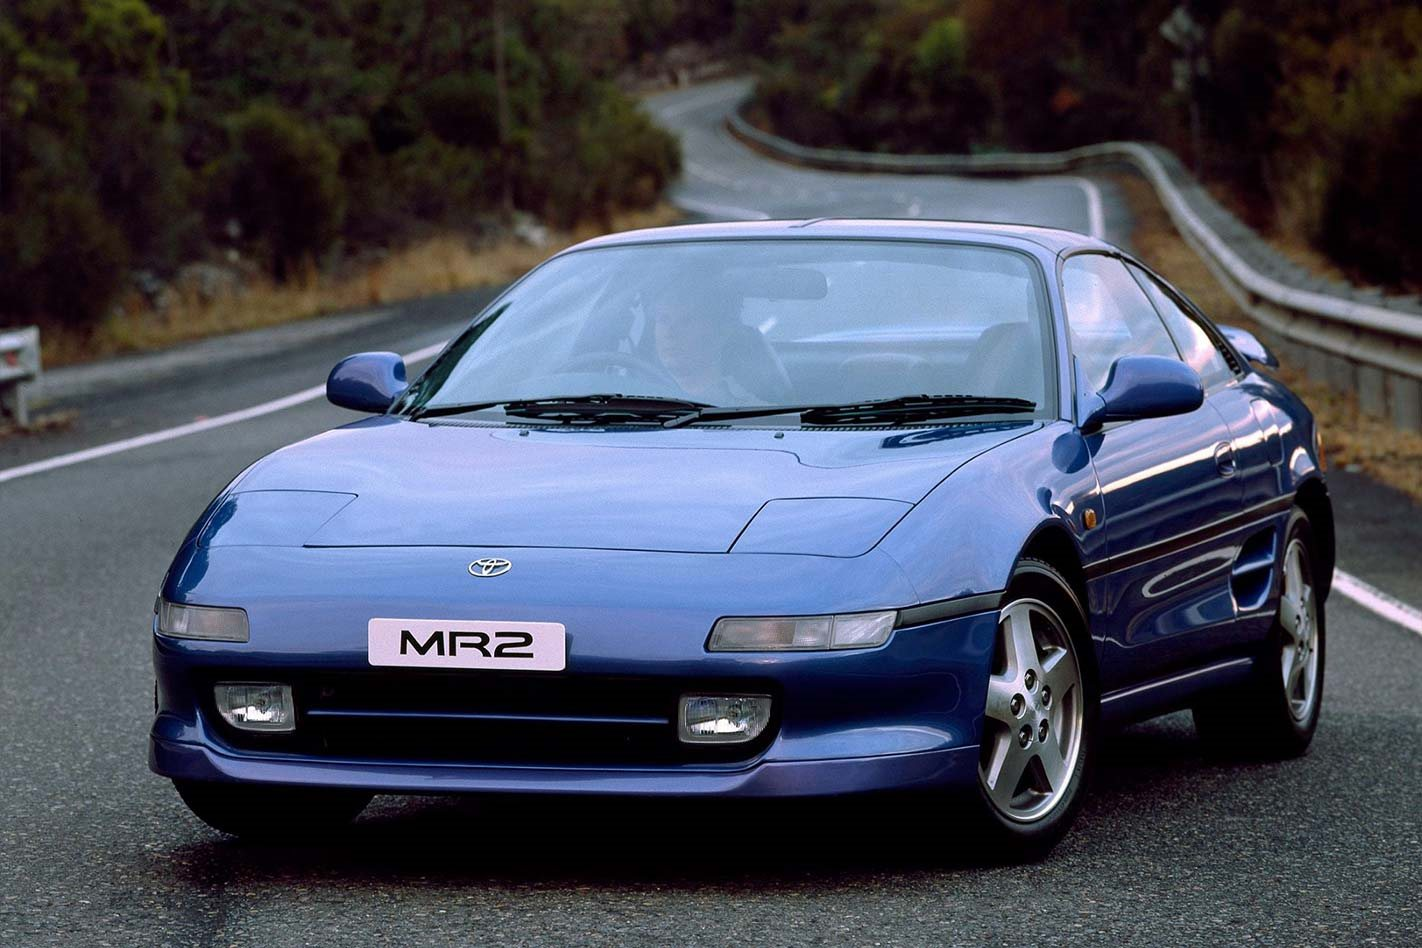 Toyota MR2 front view